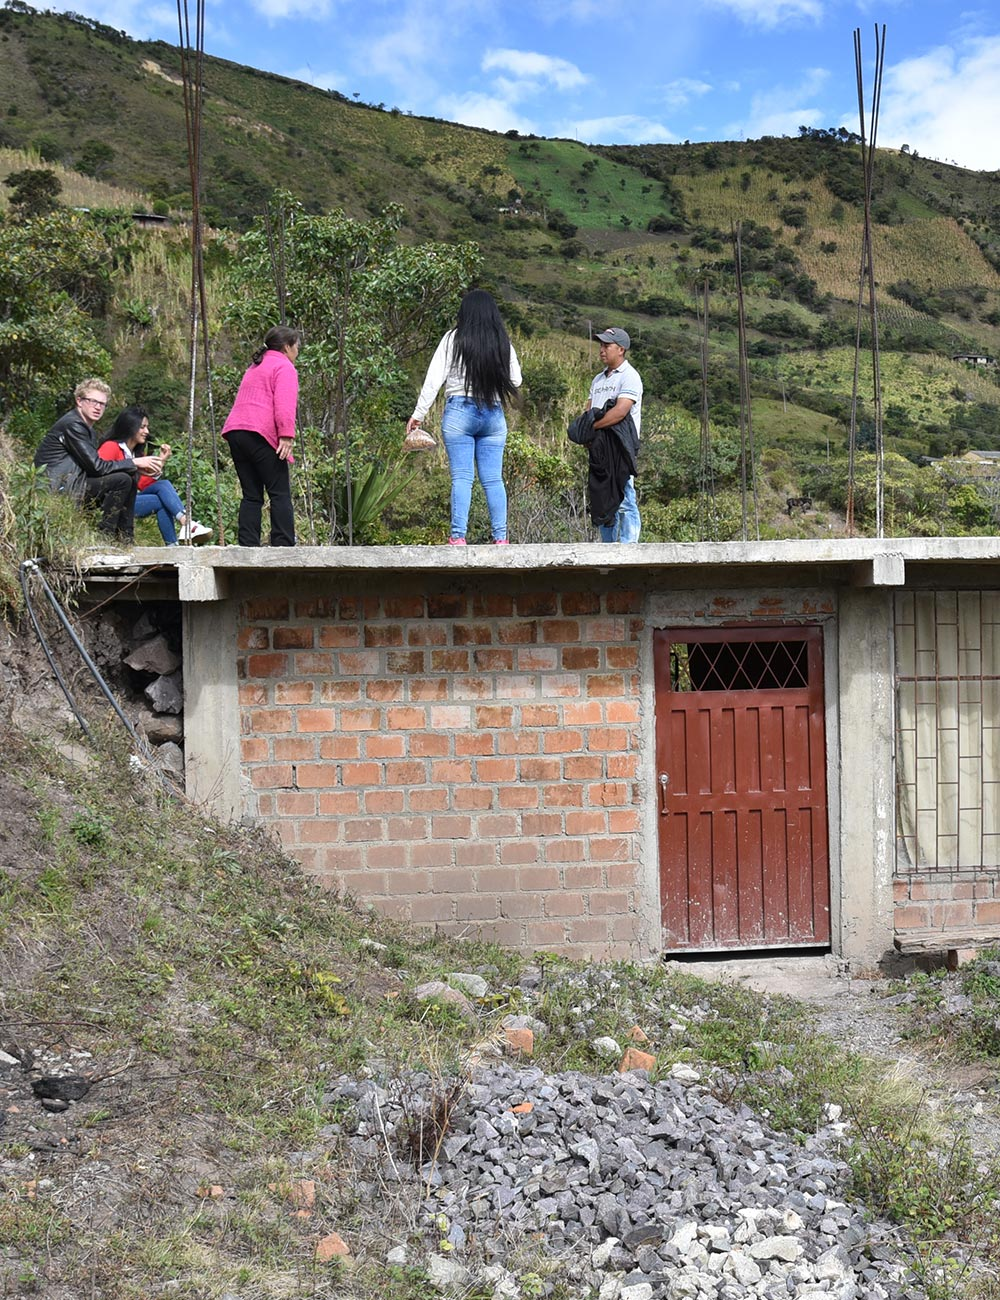 Housing Restoration - Resguardo Inga De Aponte, Narino, Colombia, 47 Beneficiary families, 52,400 lbs of cement + 45,080 bricks + 516 steel rods + 370 sheets of roofing + 5 complete bathrooms + other assorted materials